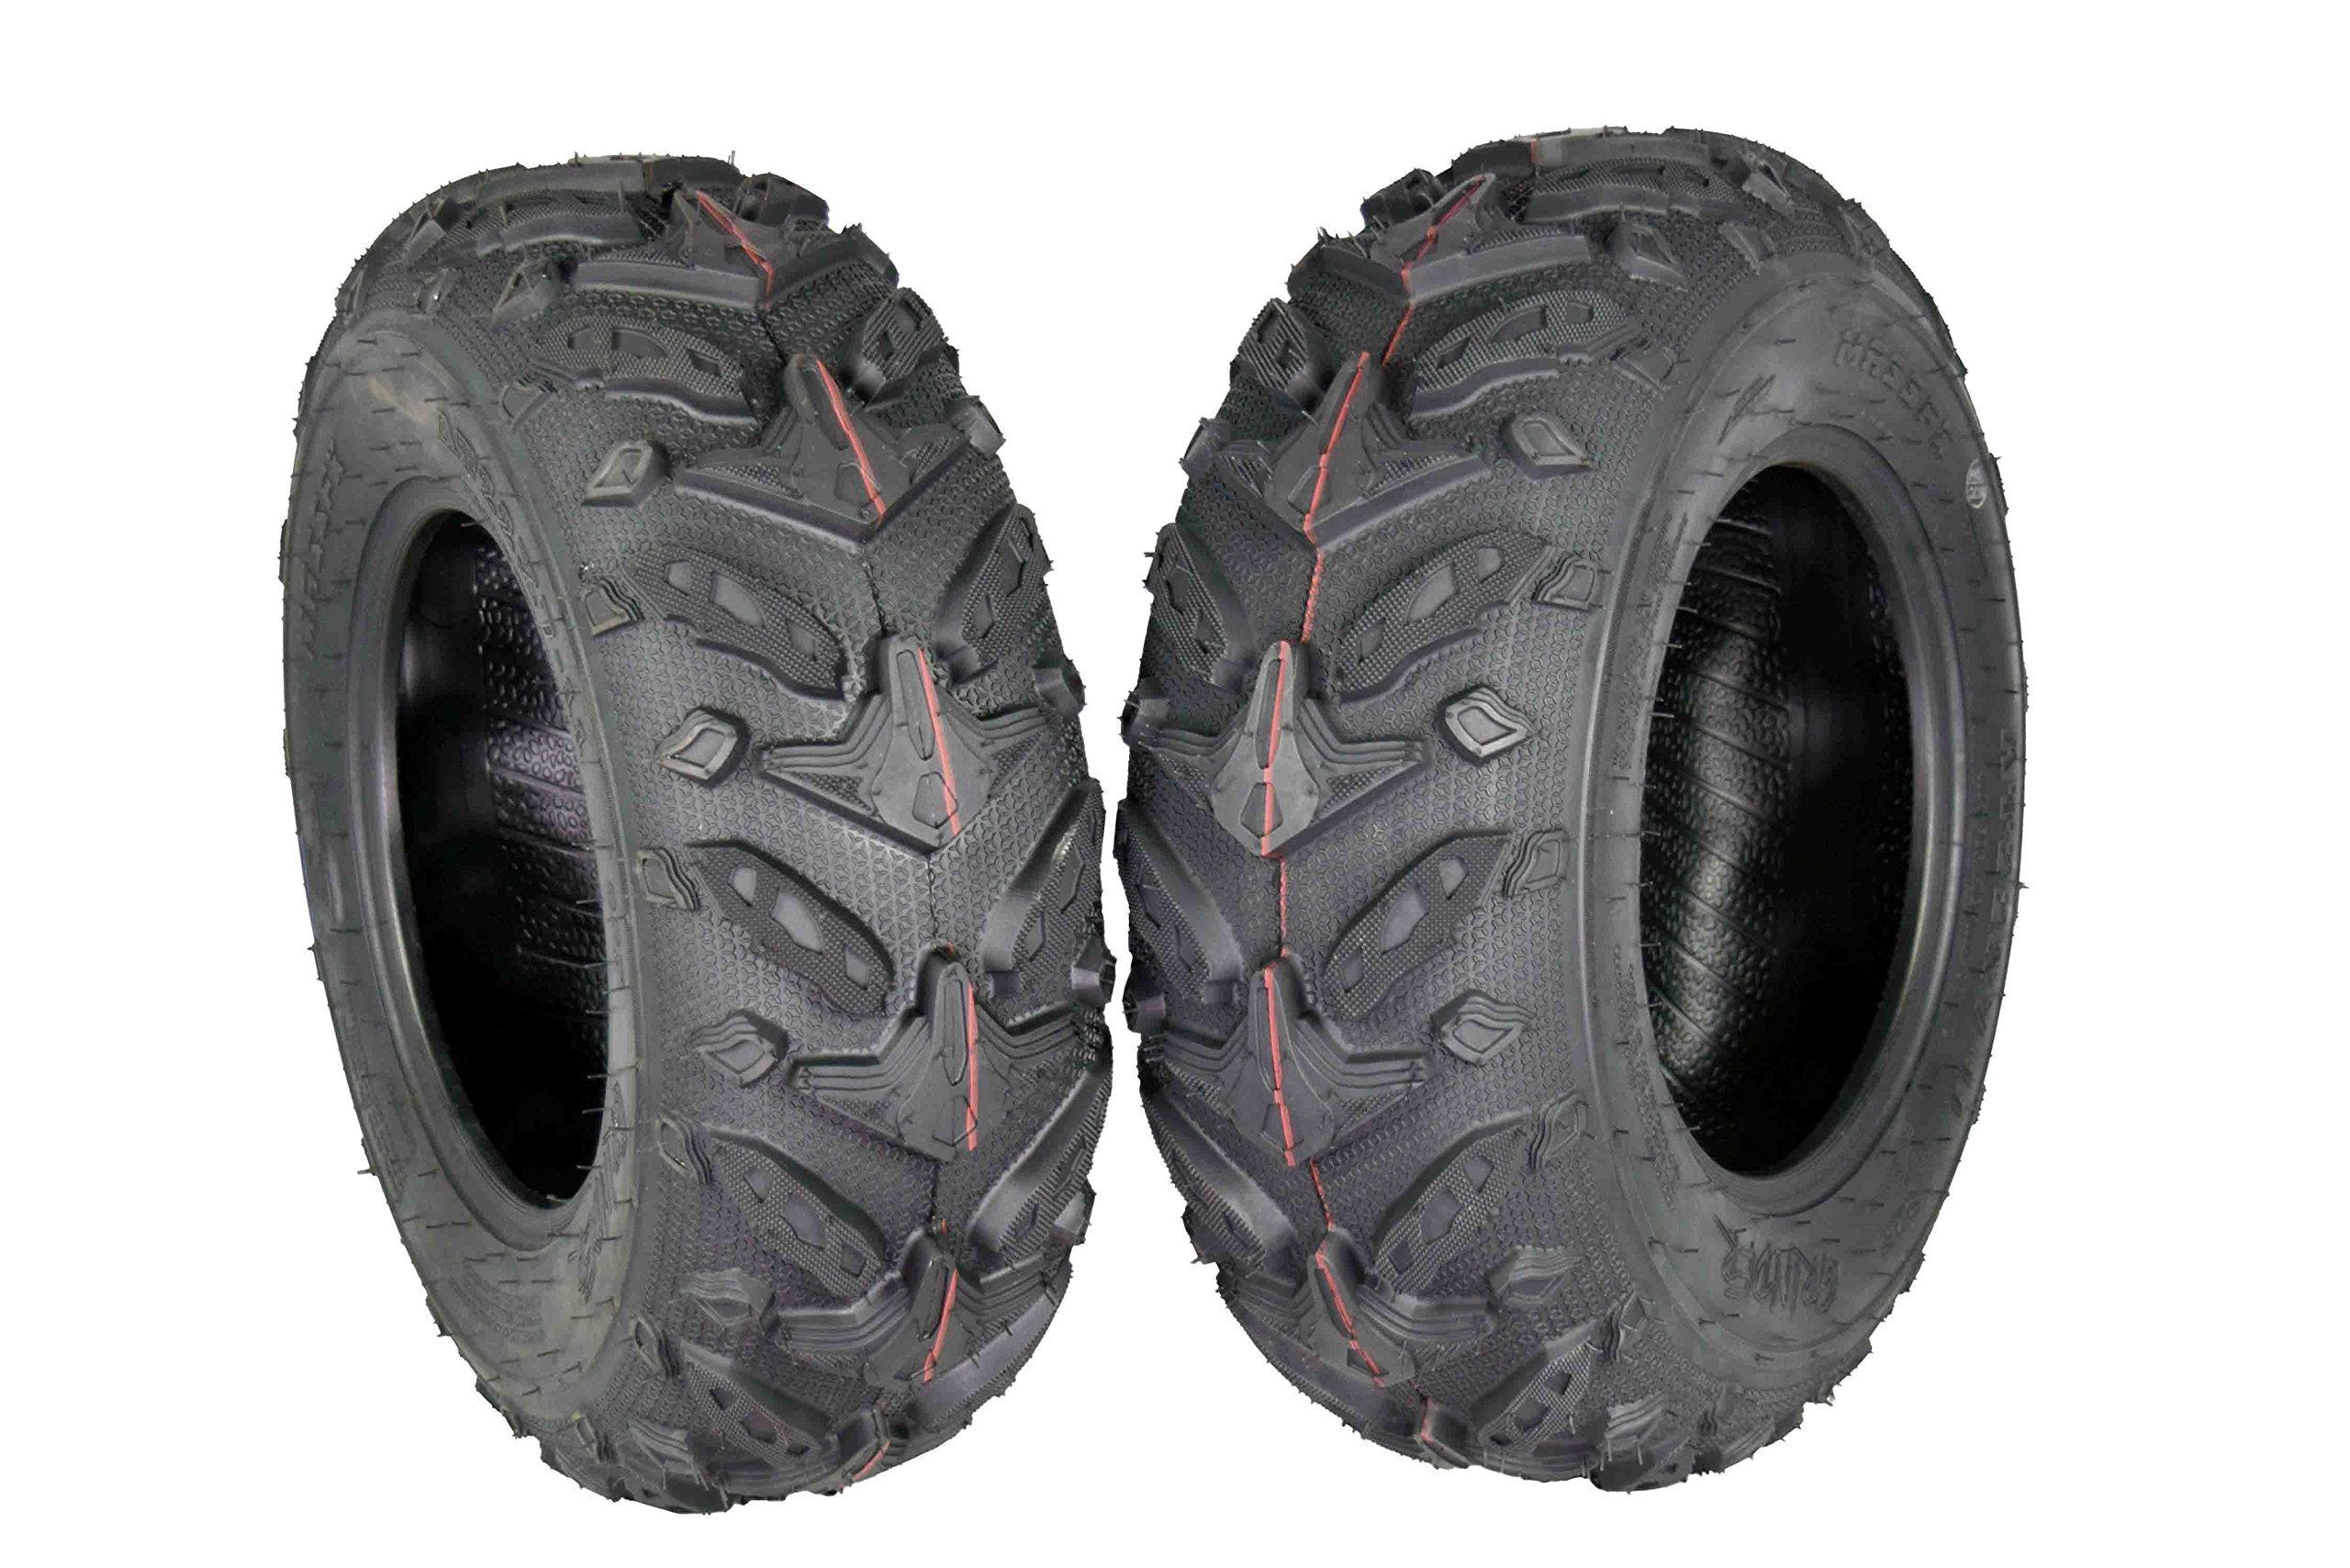 MASSFX Grinder Series ATV Dual Compound Tread Mud Sand Snow and Rock Tires (Two Front 22x7-11)